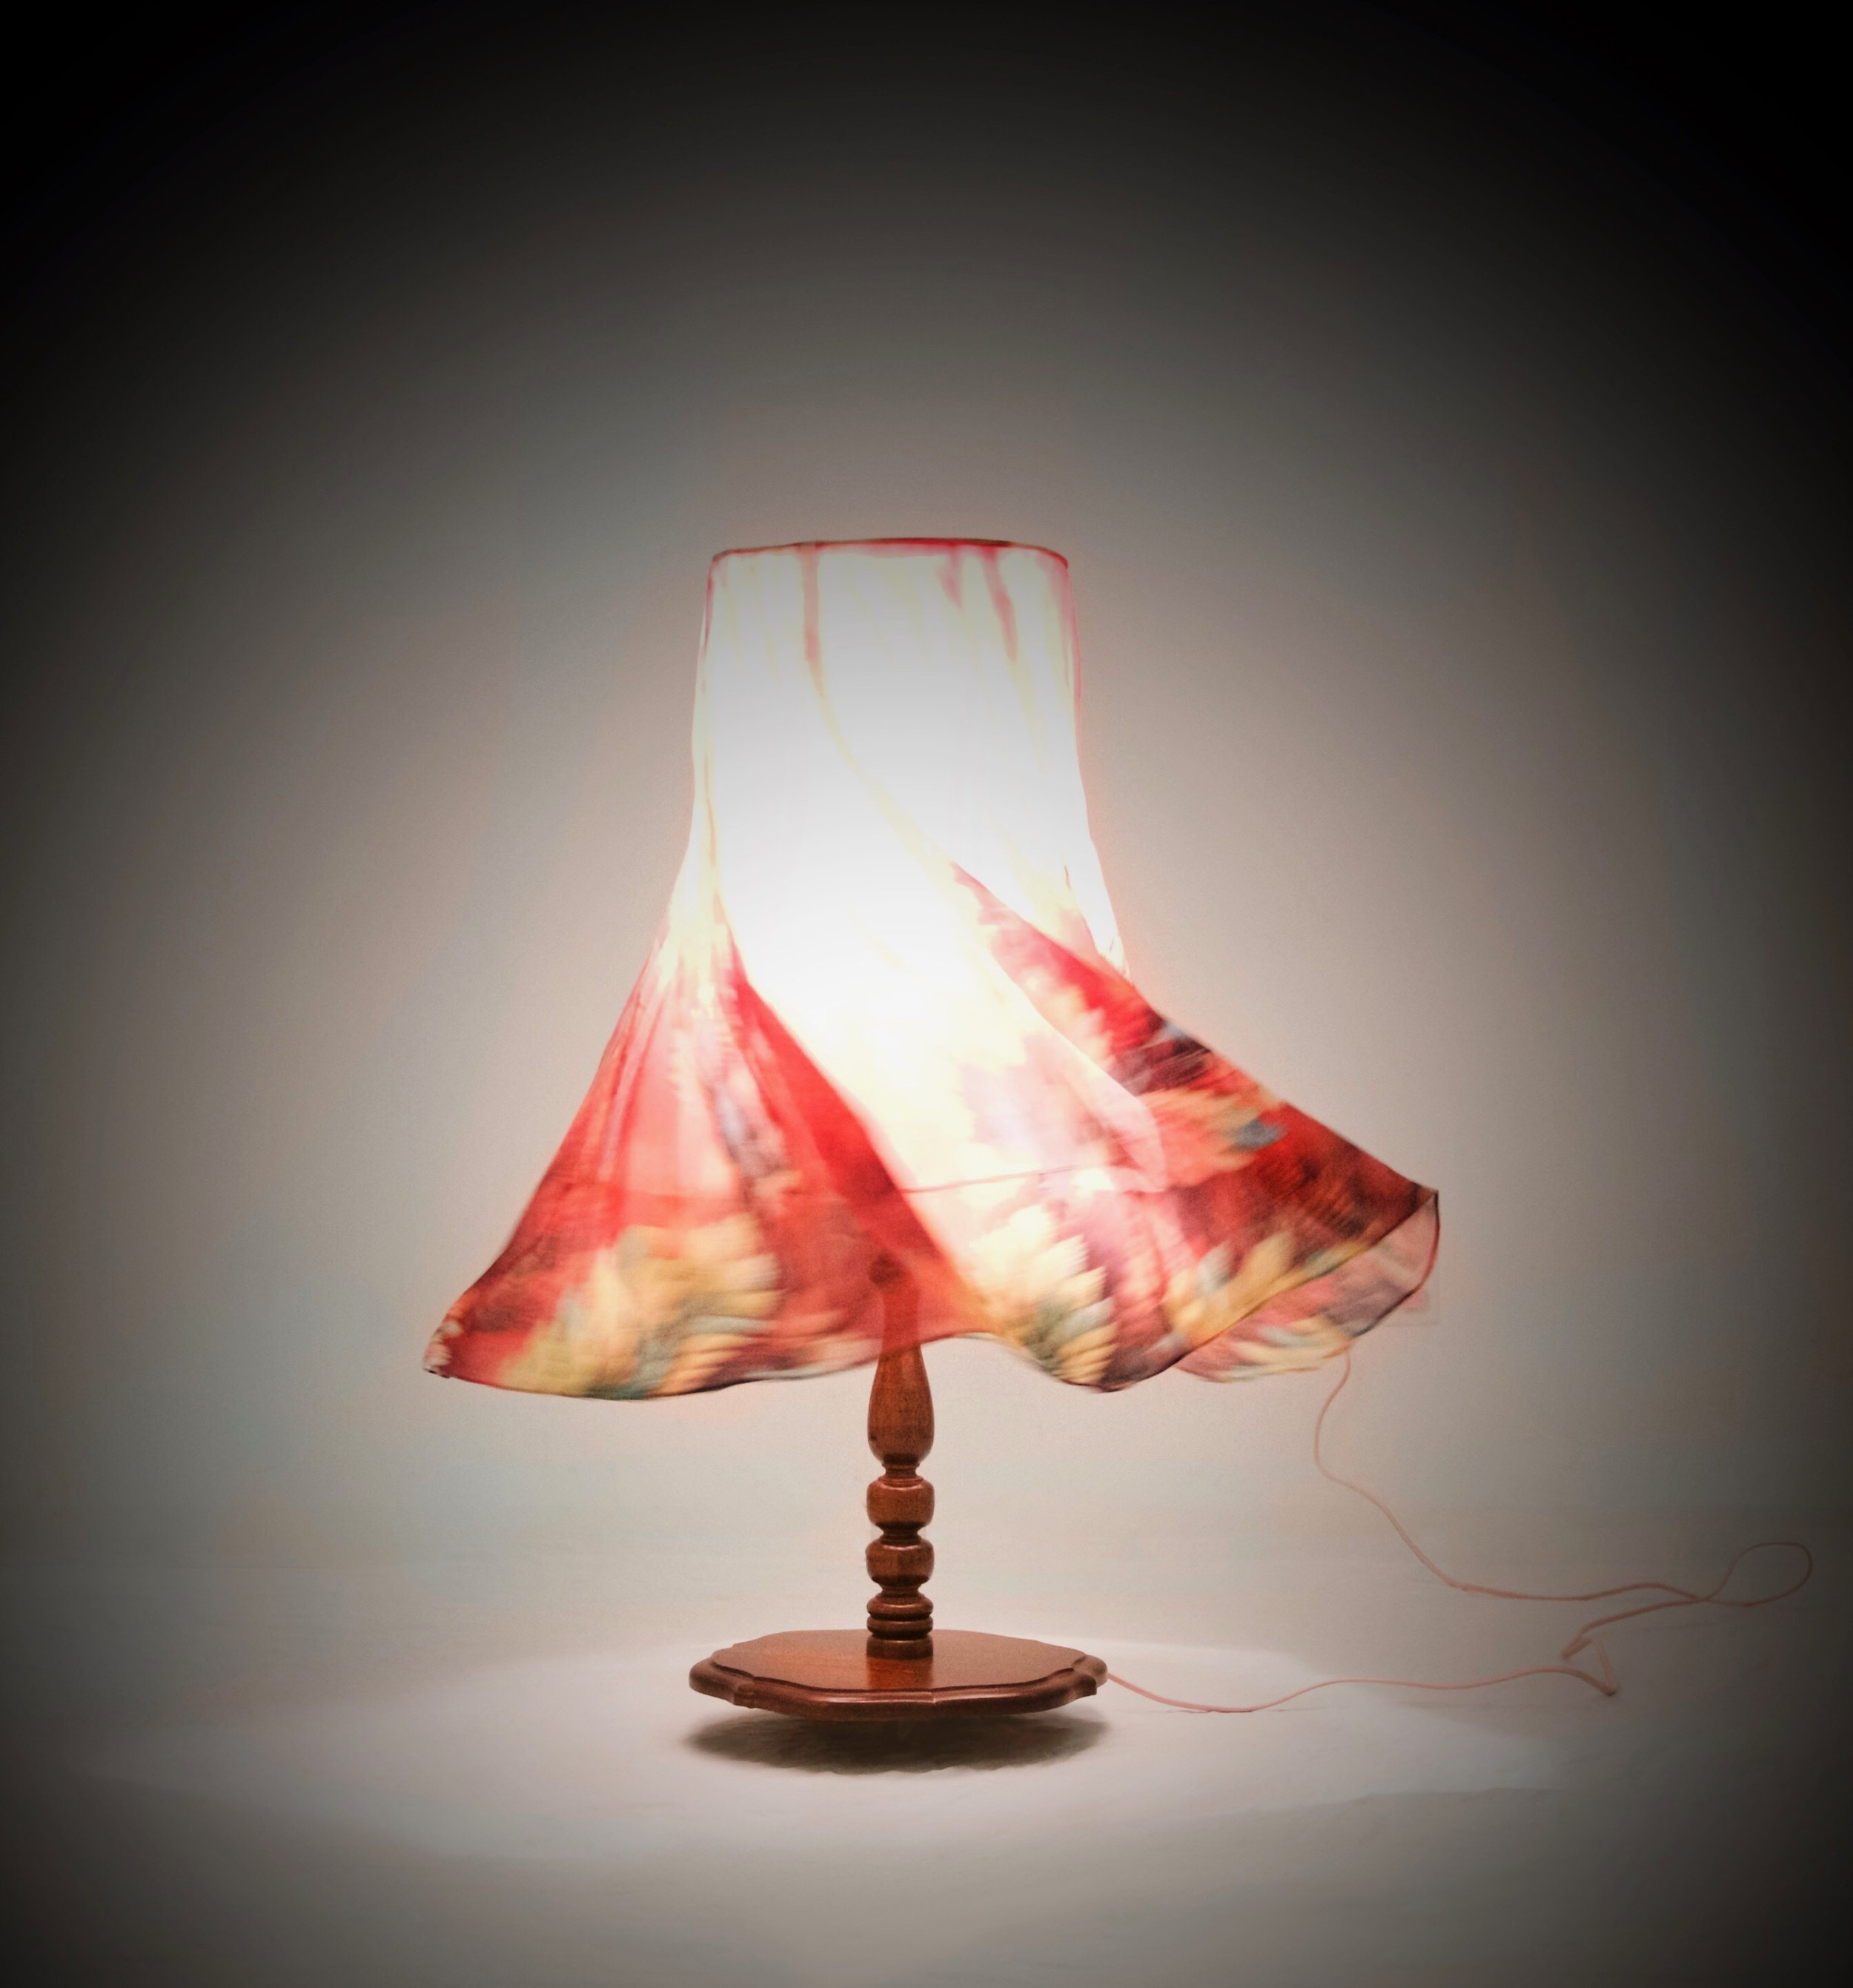 "She Dances Like a Bomb   44"" x 13"" x 13"" - when stationary  1970's side-table lamp, Edison light bulb, Arduino, 24v motor, tropical print skirt, floral scent  (2018)"